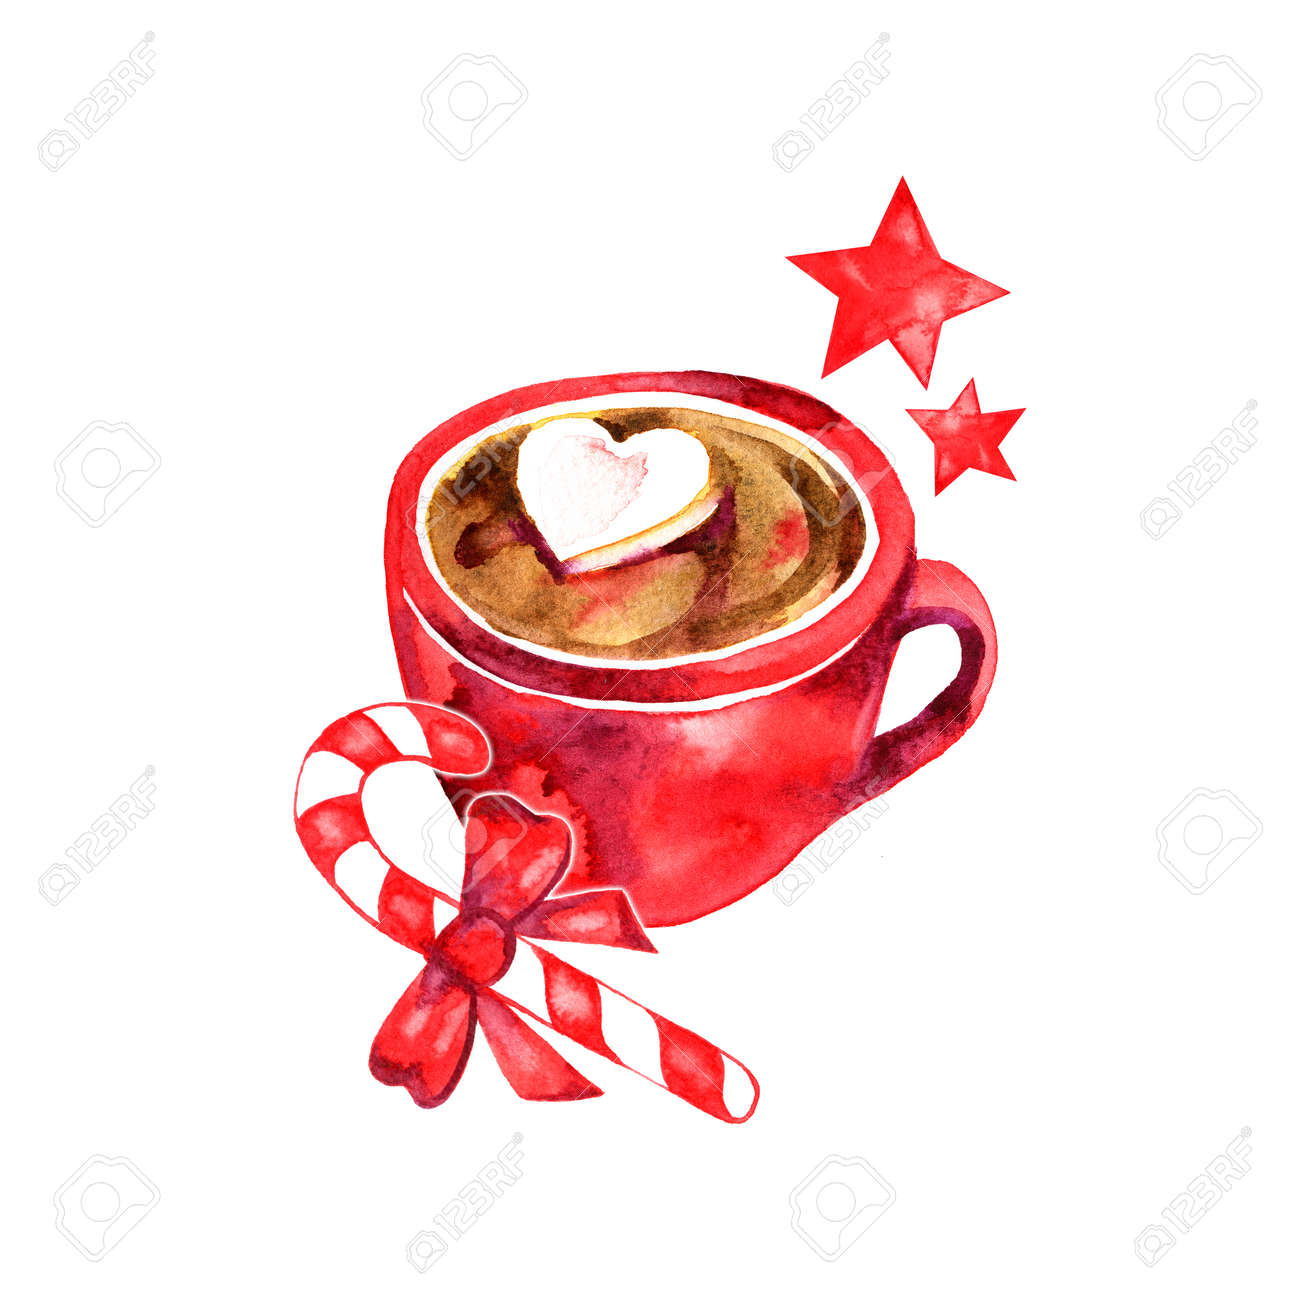 Winter hot drink, cacao with marshmallows. Cup of hot chocolate with marshmallows. Traditional beverage for winter time. Watercolor illustration. - 87925203